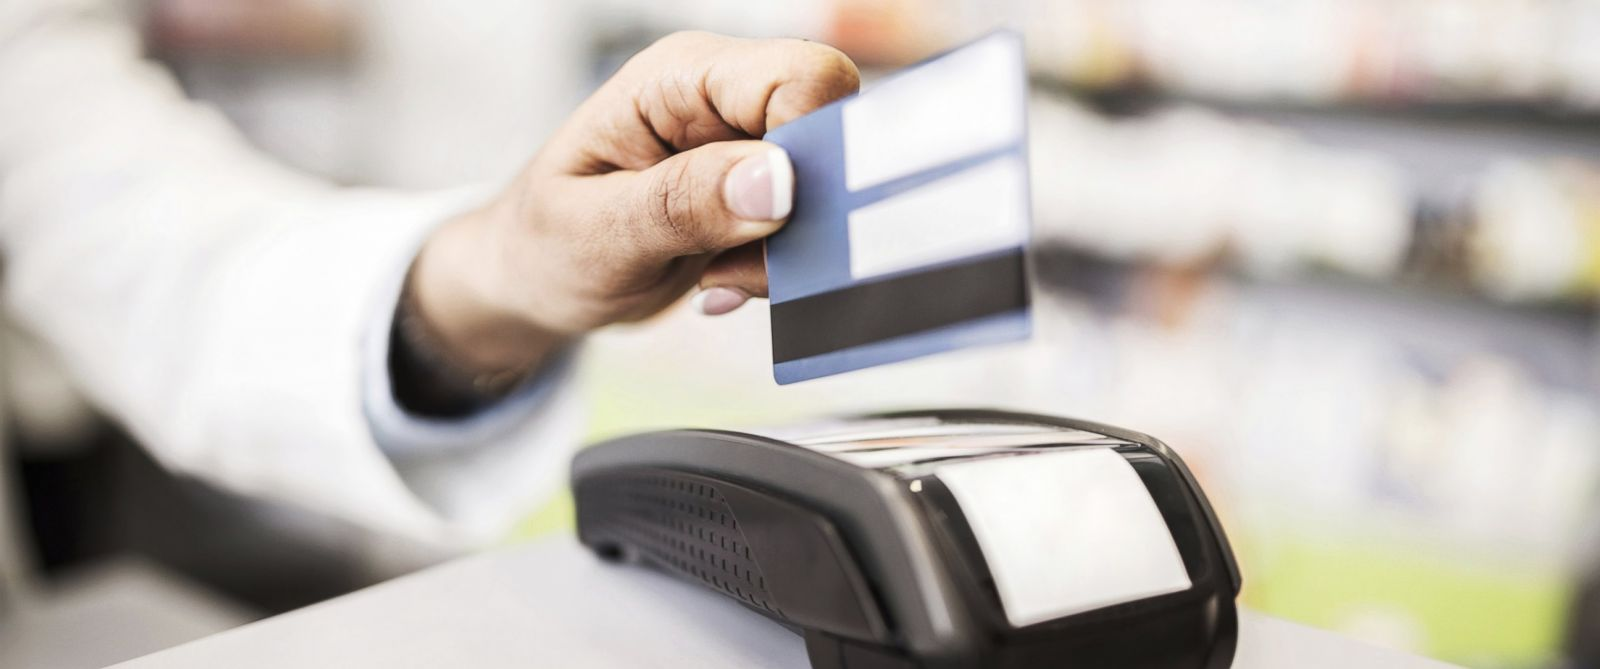 PHOTO: Credit card theft happens to at least 40 million people every year electronically.